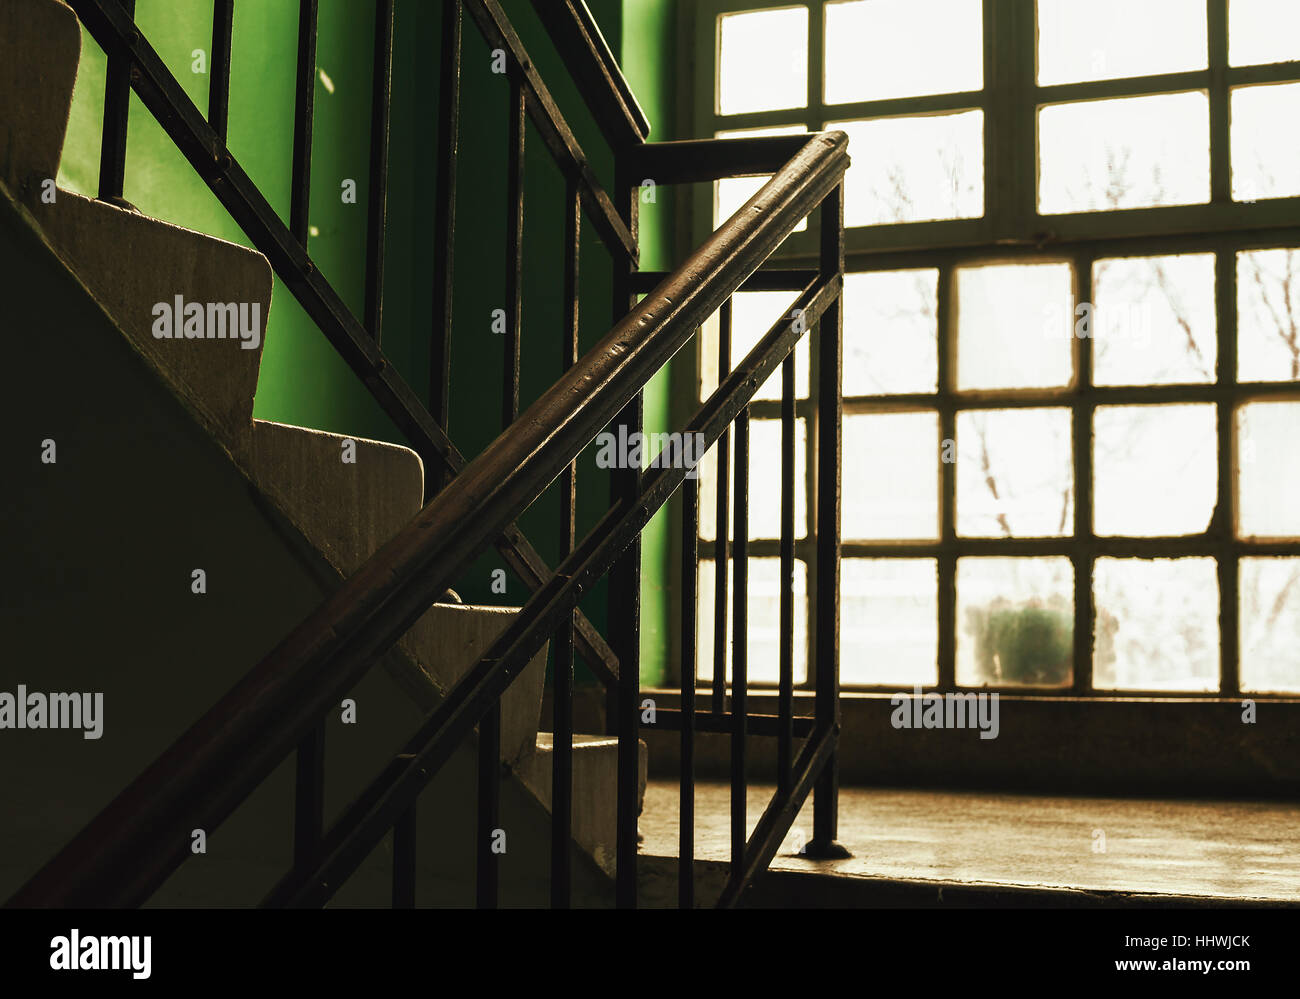 Details of an old building stairways and window, retro look. - Stock Image